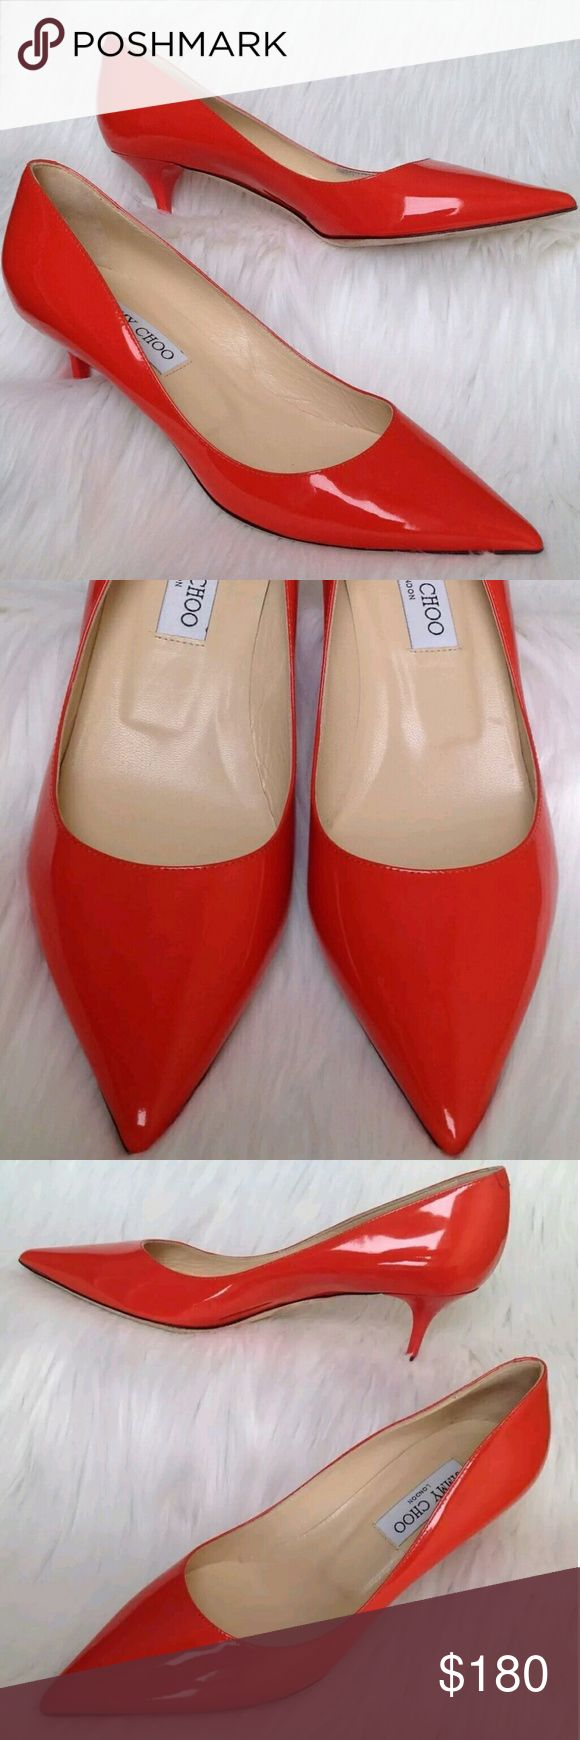 Jimmy Choo Aza Low Pointed Kitten Heel Orange Pump Item Specifics    Brand: Jimmy Choo   Size: Womens 38.5   Model:  Aza Low Pointed Kitten Heel Patent Leather Pump   Color: Tangerine Orange   This pre-owned item is in great condition doesn't come with box or dustbag. There are no odors, stains; however, there is a slight scuff mark on the back of the left shoe (refer to 7th photo) and on the inner side of right shoe (refer to 8th photo). We are a non-smoking and a pet free home.    100%…